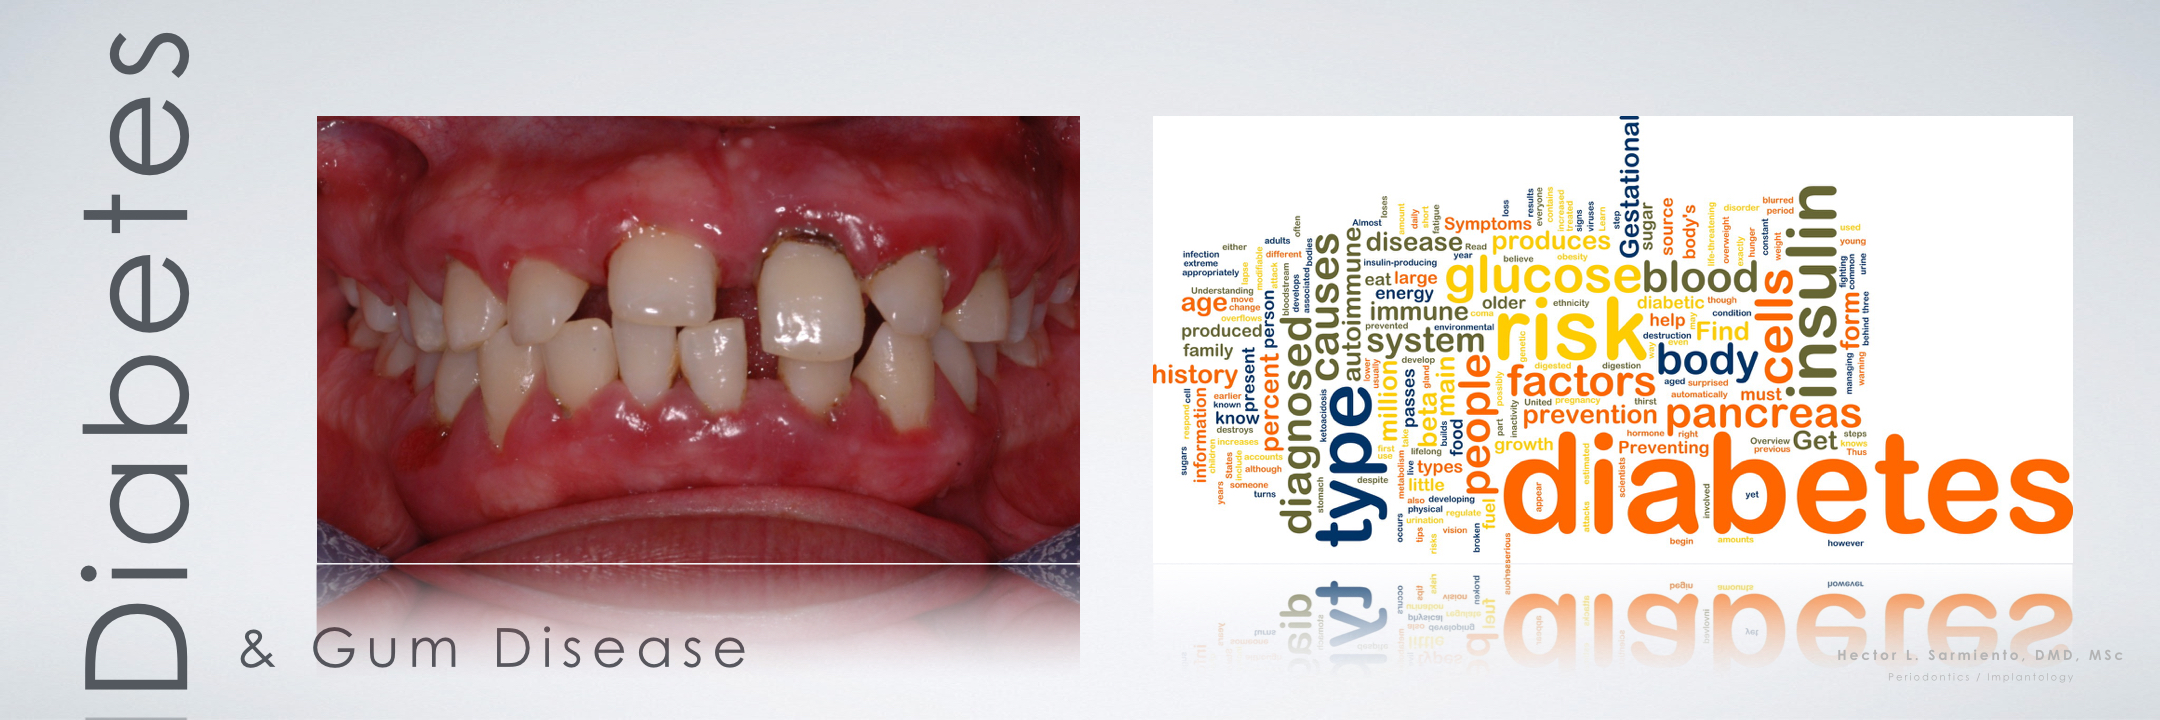 the medical studies on the relationship between gum diseases and diabetes A positive association between obesity and periodontal disease was repeatedly it will also improve knowledge on the cellular and molecular mechanisms that underpin obesity-periodontal disease relationship learn about clinical studies ages eligible for study: 30 years and.